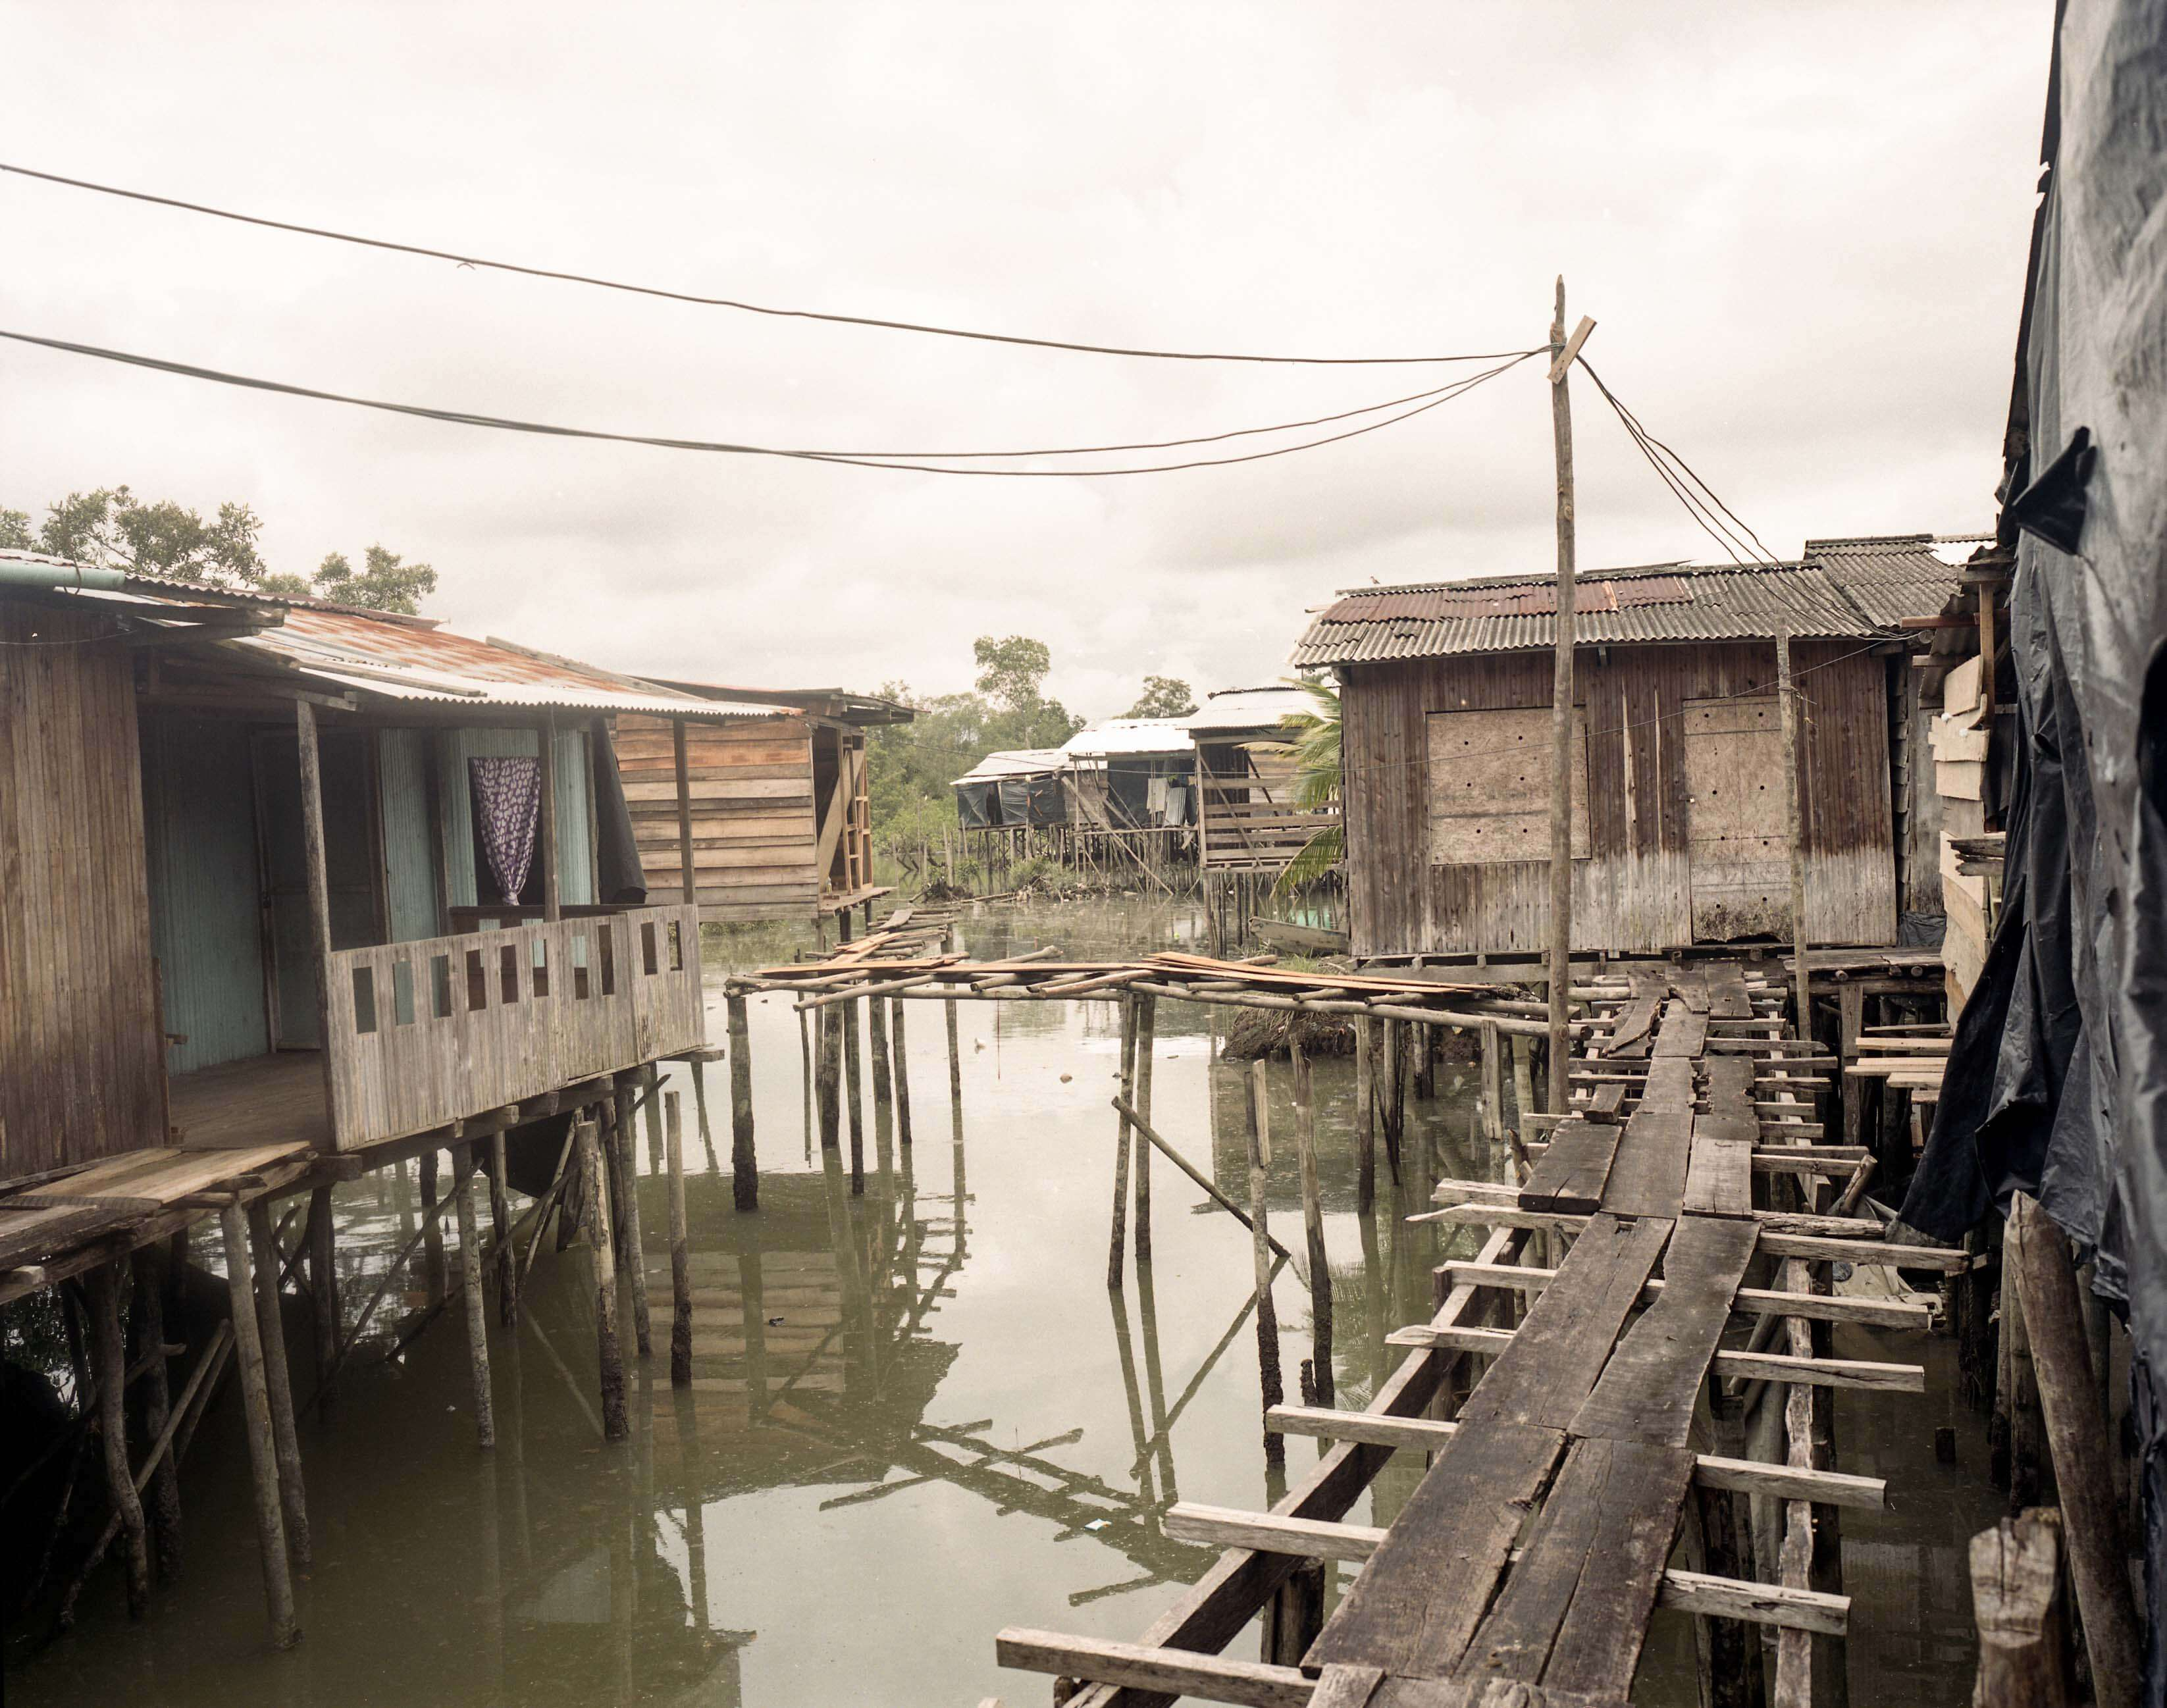 Village on water photo copyright by Alex Kemman